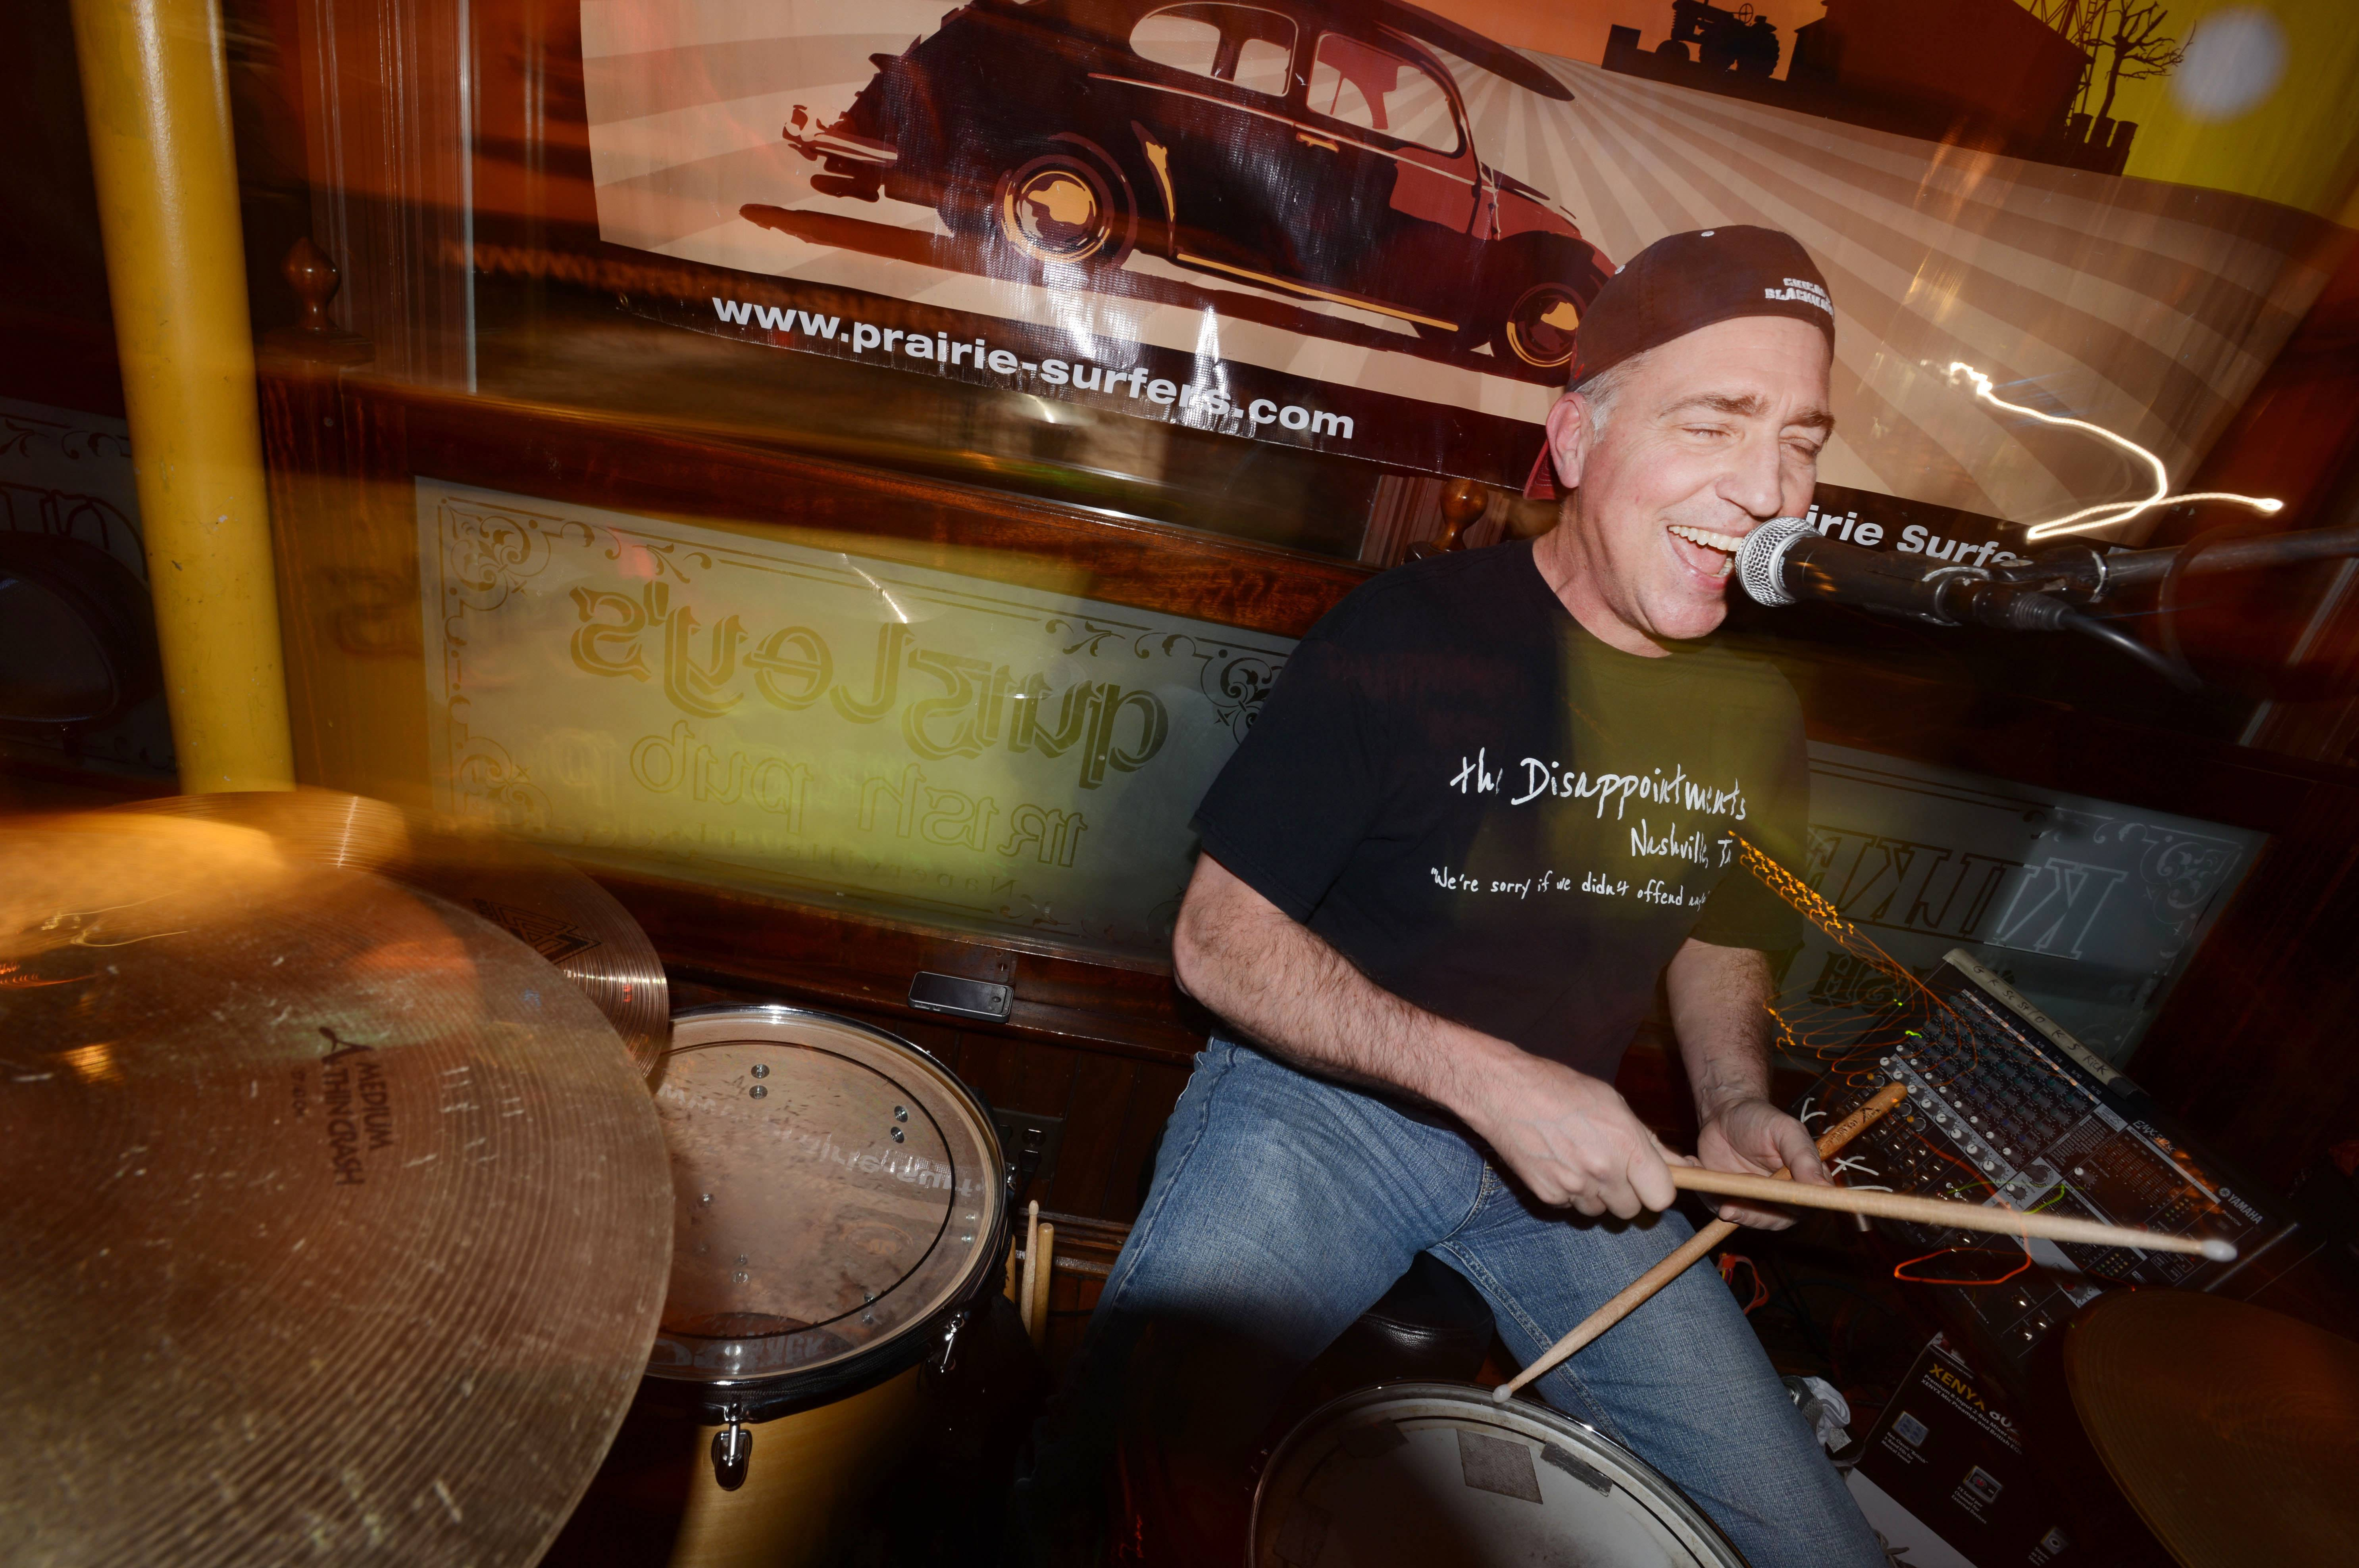 After becoming the ninth person to have a new type of surgery at Northwestern Memorial Hospital in Chicago to remove a tumor in his brain, Steve Mores of Aurora is back to playing drums with his band the Prairie Surfers at Quigley's Irish Pub in Naperville.